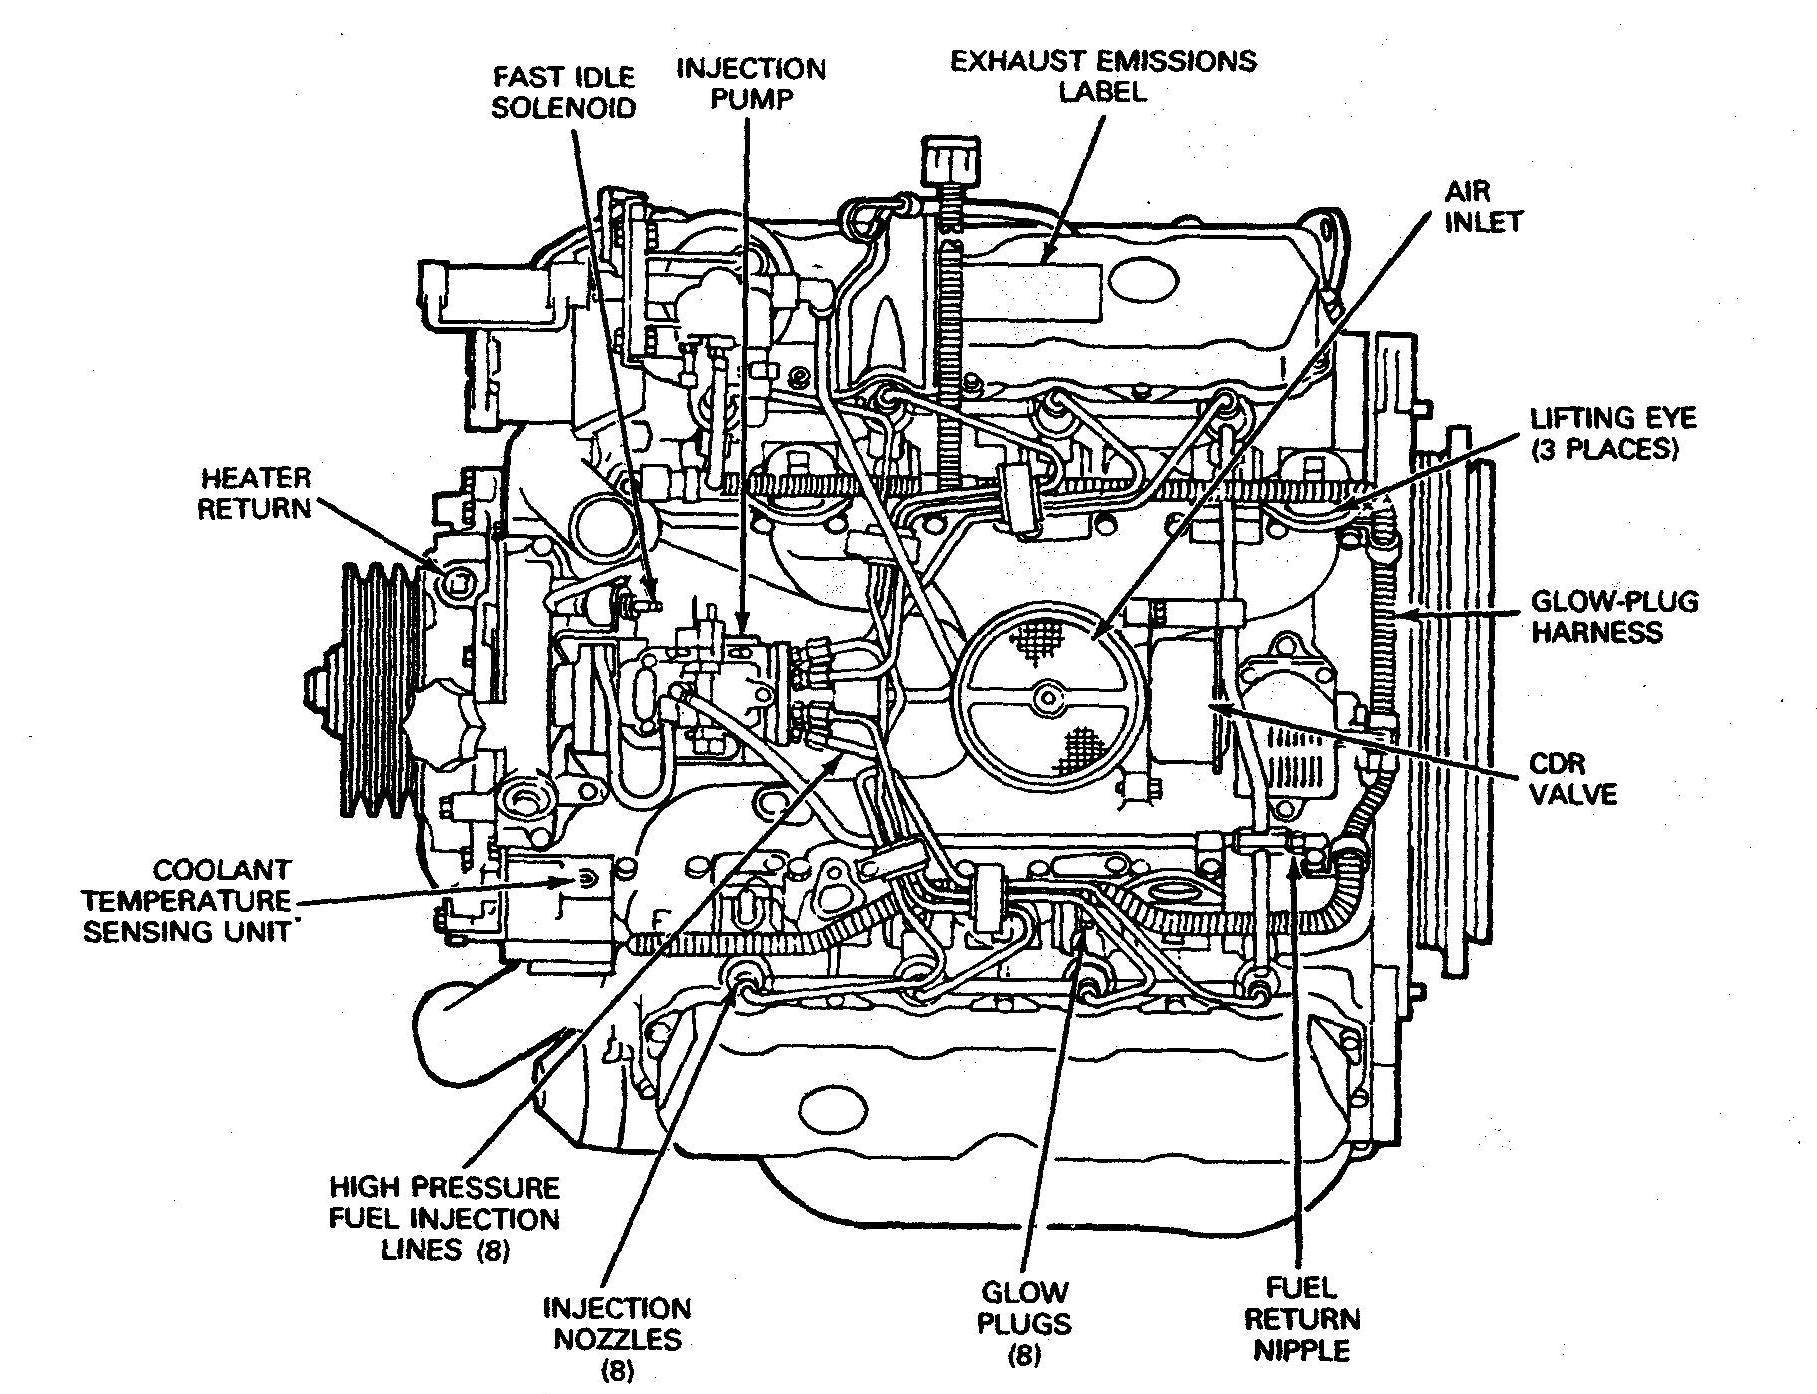 Engine and jet drive besides 1989 Gmc Steering Column Diagram   Stidge   Keyword Gmc furthermore Chuckschevytruckpages   images starter together with Exploded View 1972 Chevelle Steering Column together with 665701 2004 Rx330 Rear Wiper Blade. on 1963 gmc wiring diagram